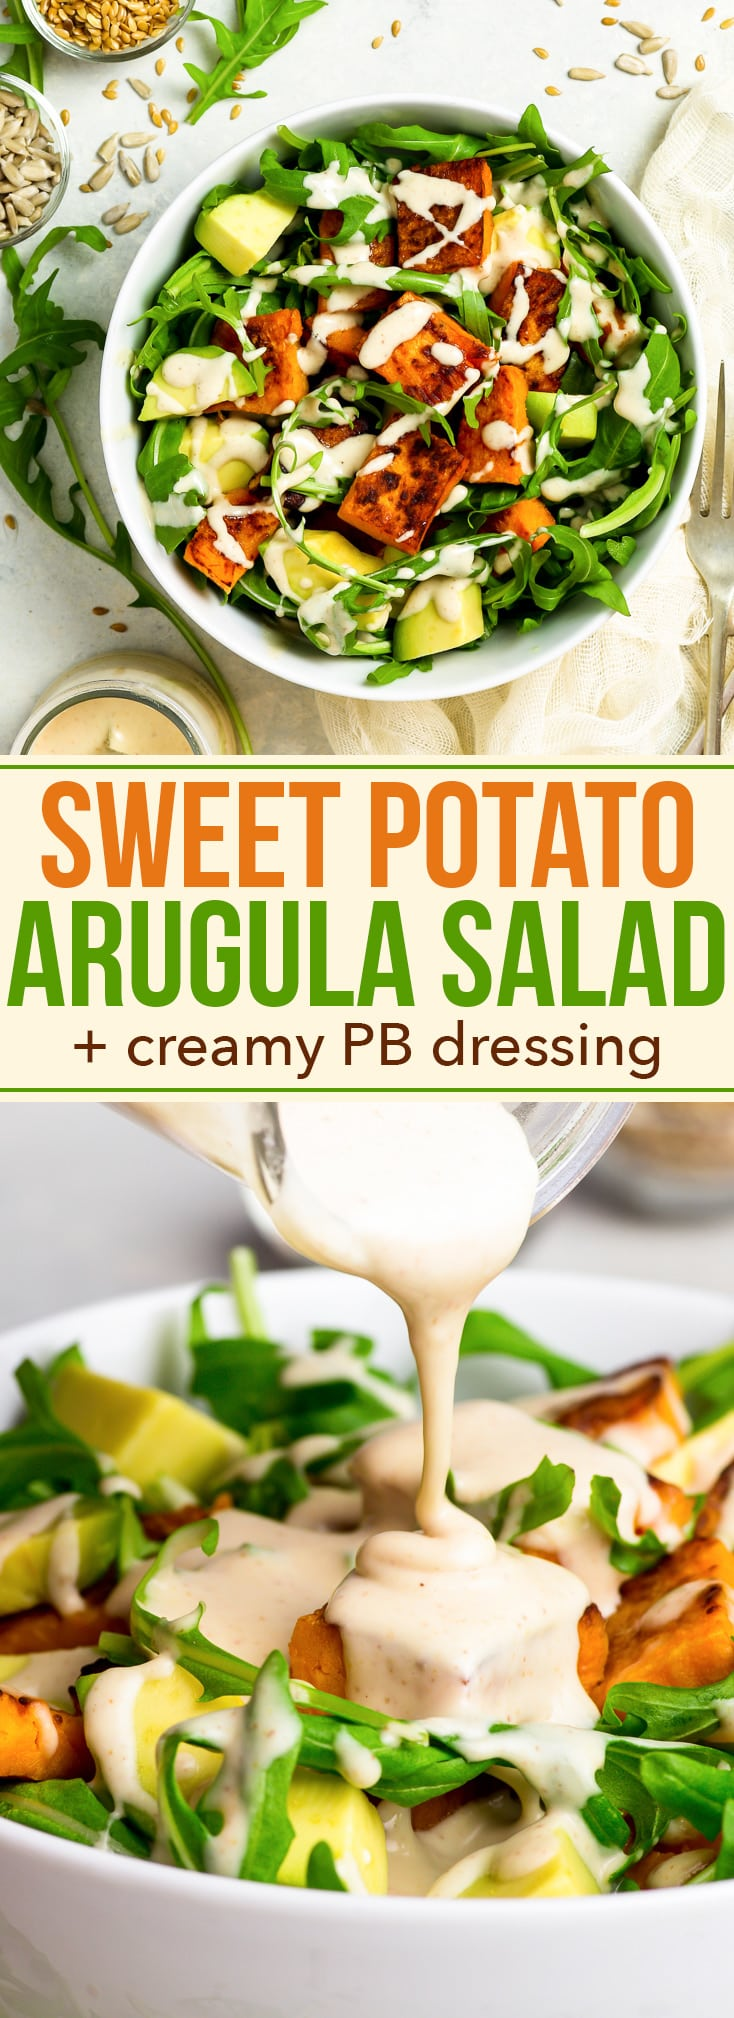 "15-Minute Sweet Potato & Arugula Salad with Avocados + Creamy Peanut Butter Dressing - This sweet potato & arugula salad is the perfect quick and healthy mid-week lunch, that you can prepare in just 15 minutes! With a hack to make the most amazing ""roasted"" sweet potatoes (in only 10 minutes) and with the creamiest 4-ingredient peanut butter dressing. Gluten free recipe. Healthy recipe. Salad recipe. Salad dressing recipes. Vegan lunch. Easy salad recipe. #healthyrecipes #healthyeating #salad"